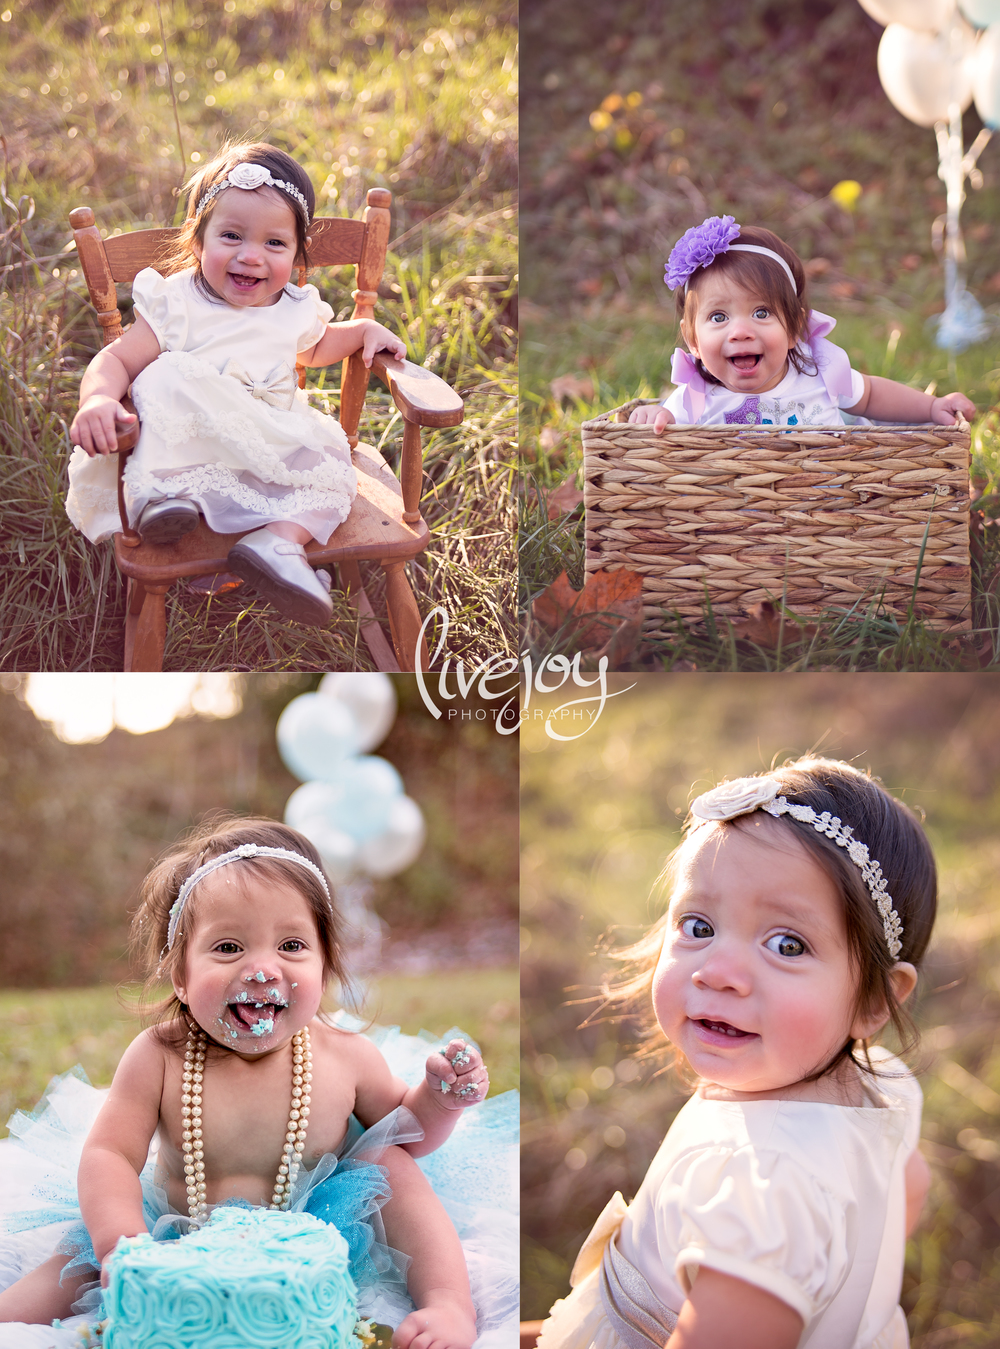 One Year Baby Photography | Cake Smash | LiveJoy Photography | Oregon